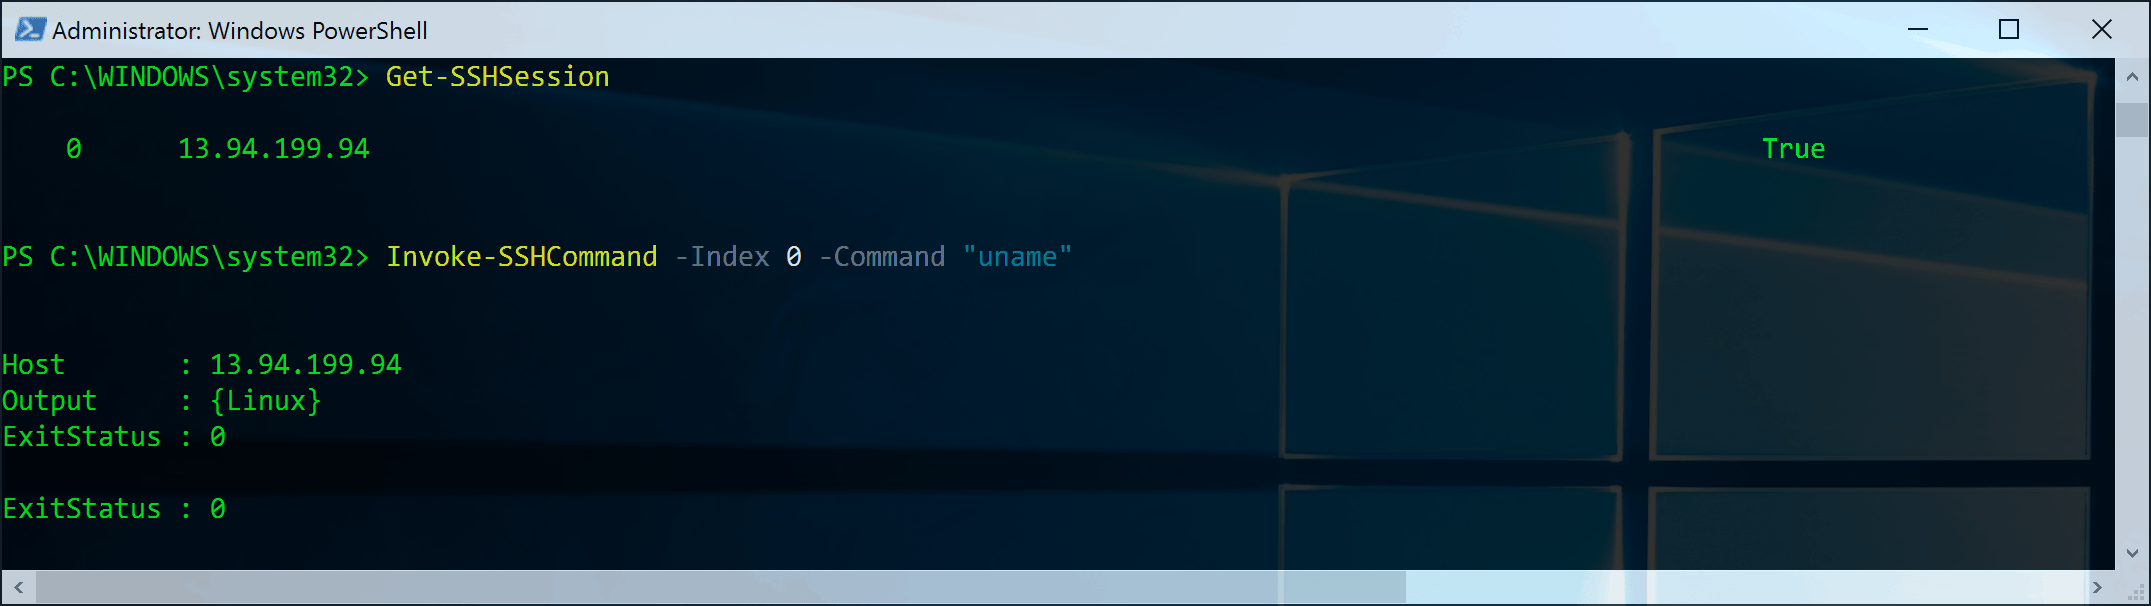 Using SSH with PowerShell - Thomas Maurer